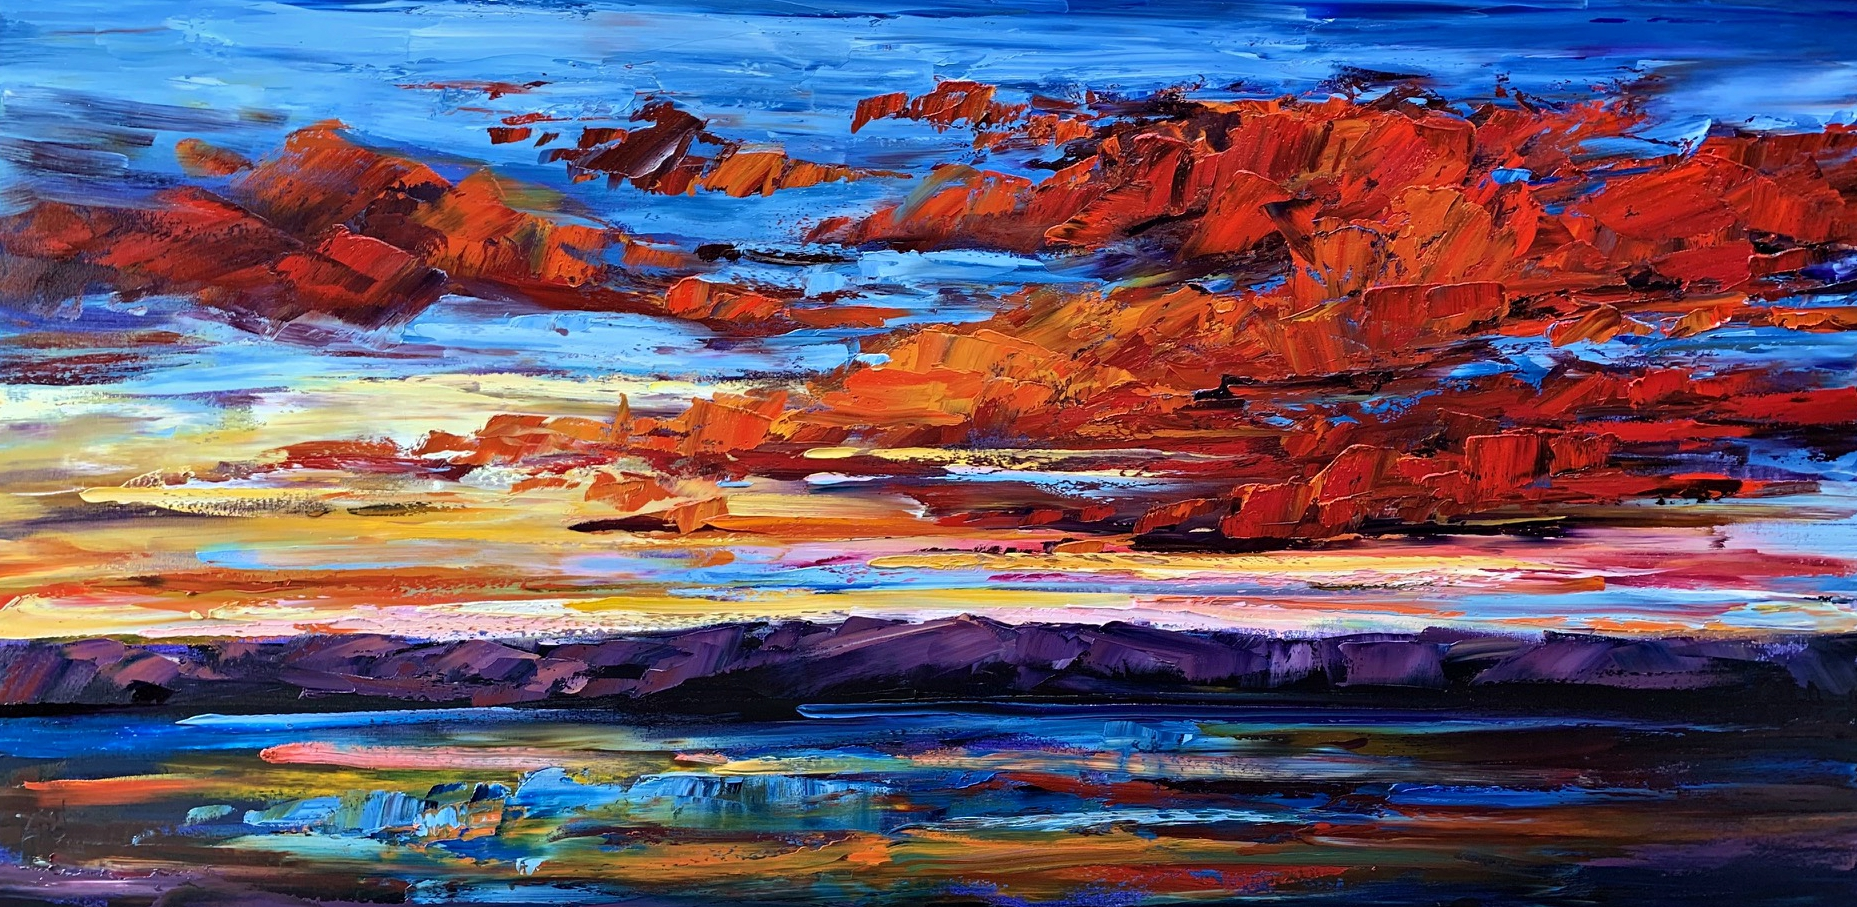 Where the Sunshine Switches Places with the Moon by Kimberly Kiel | Effusion Art Gallery + Glass Studio, Invermere BC